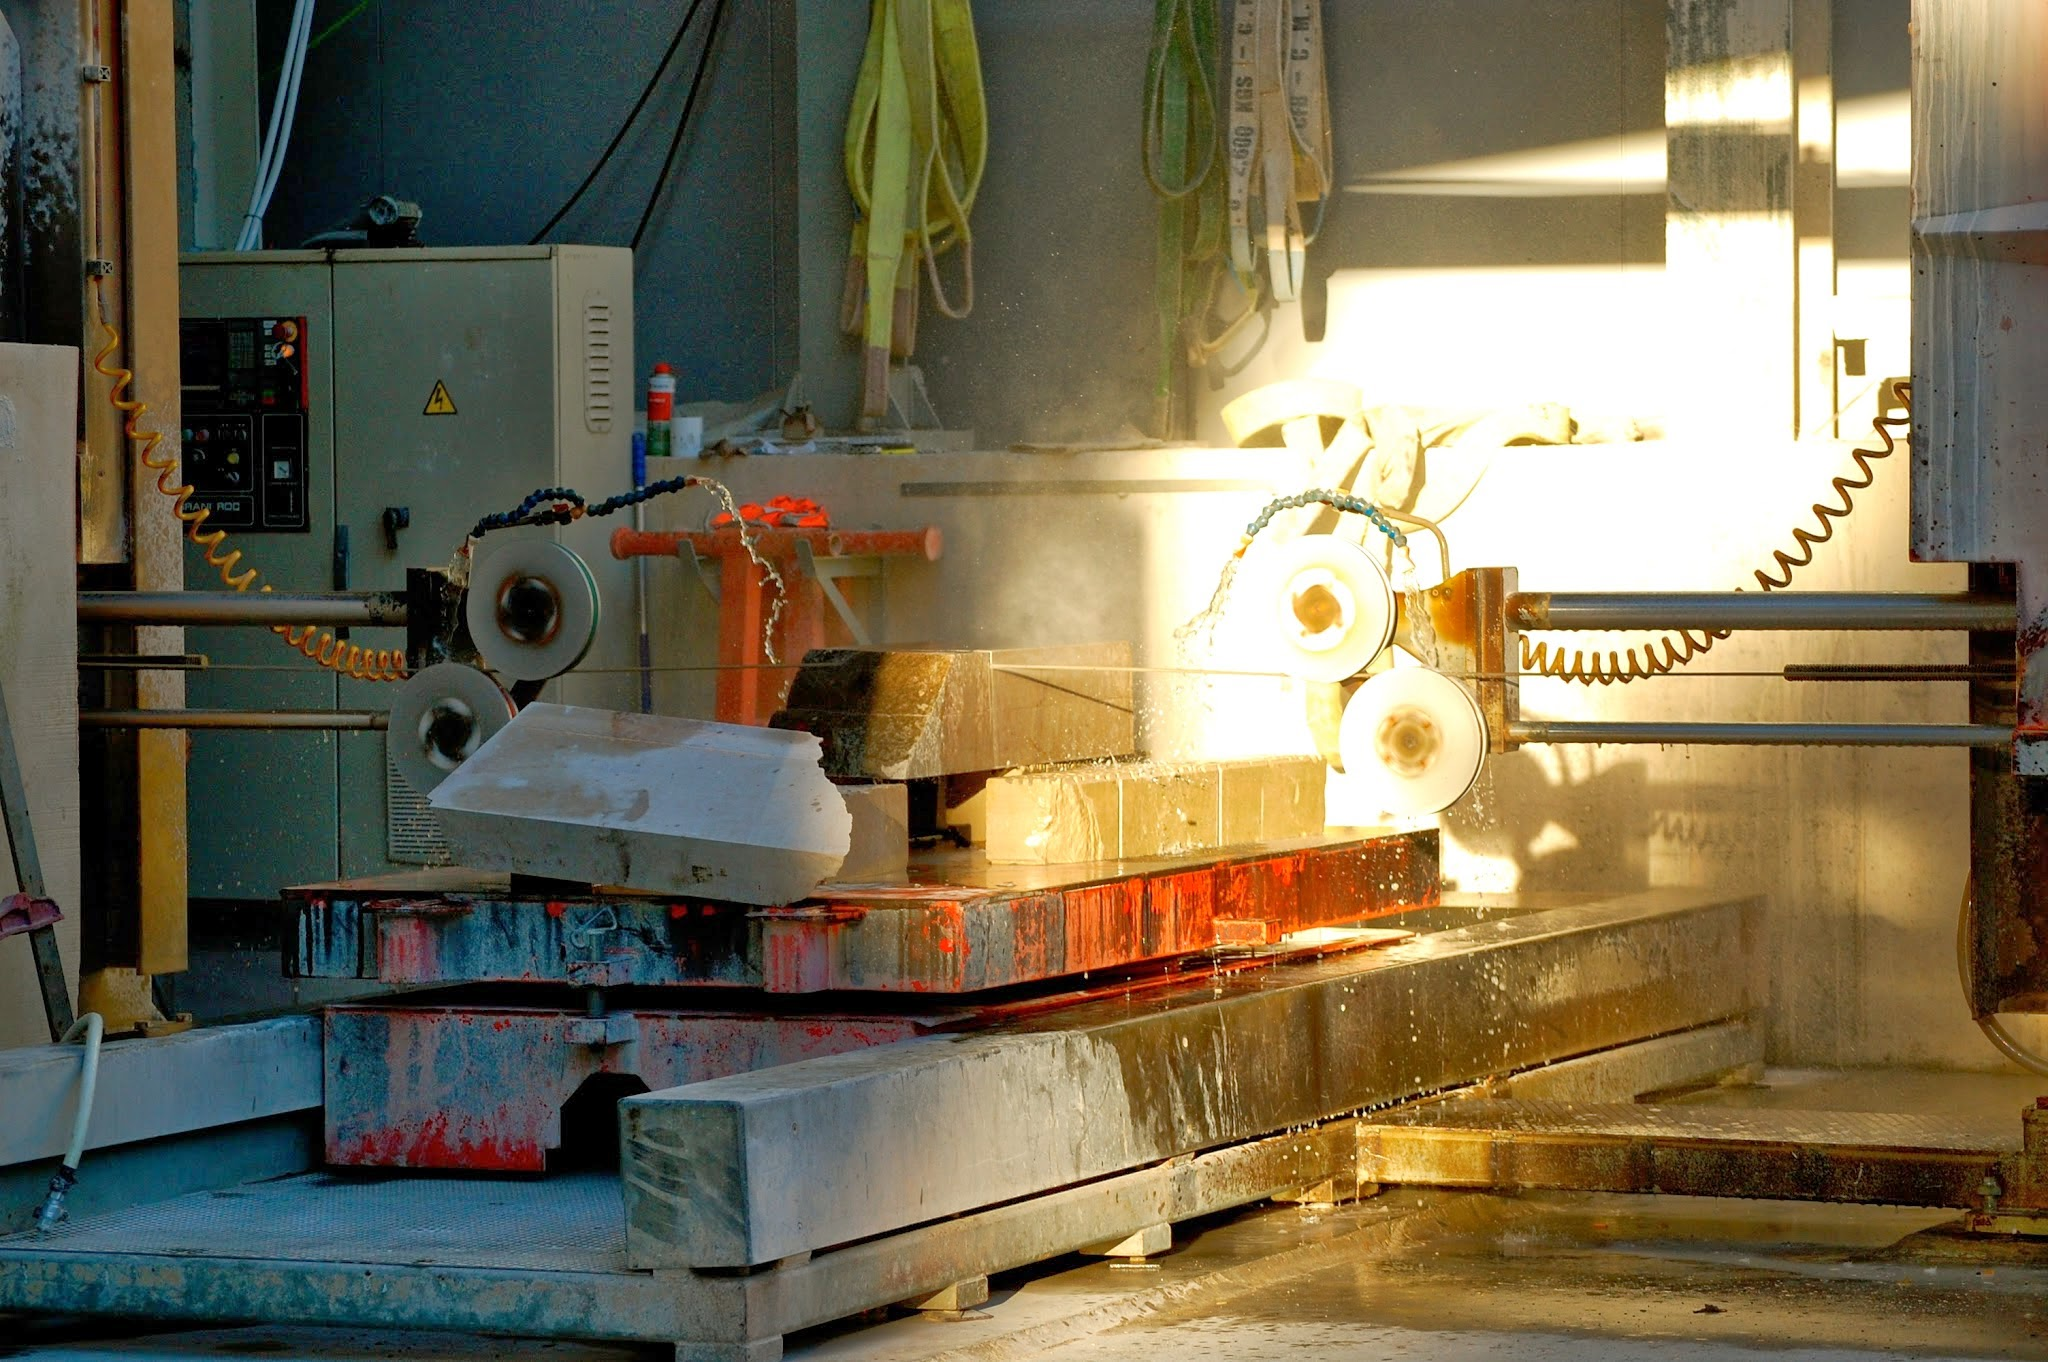 Stone cutting machine at the Sagrada Familia